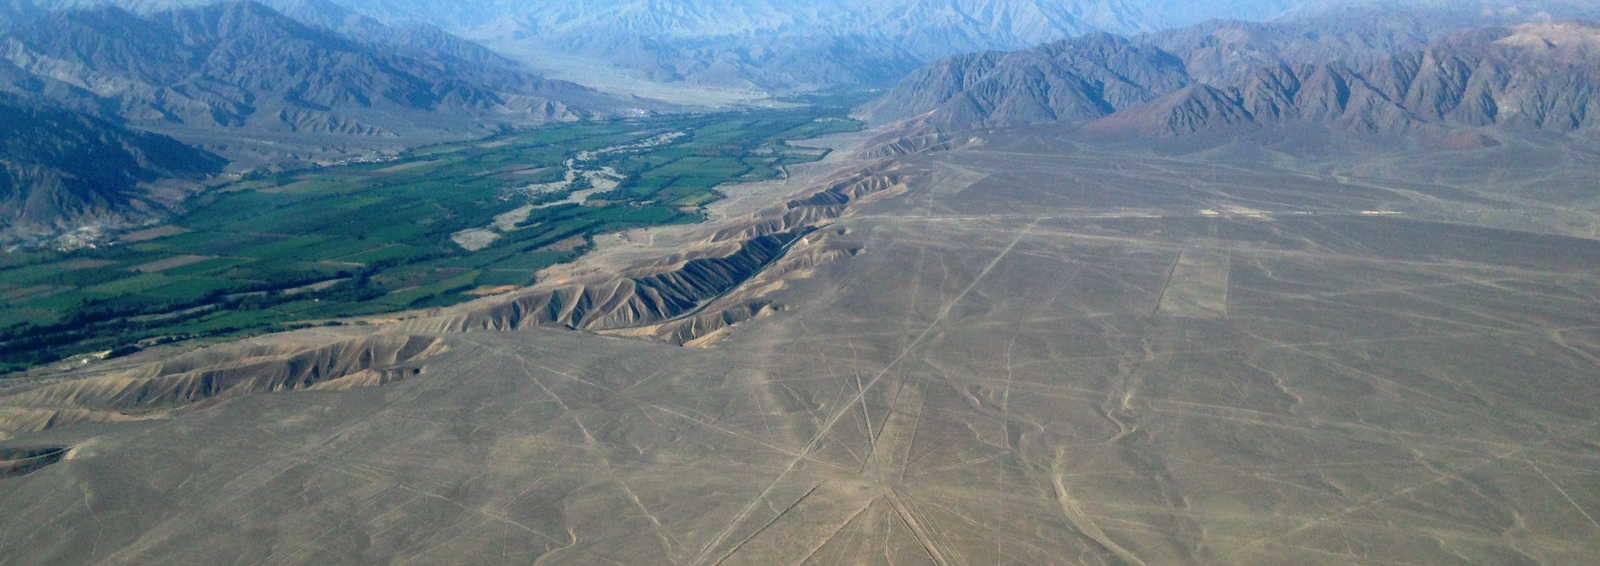 A view of the Nazca Lines, Peru